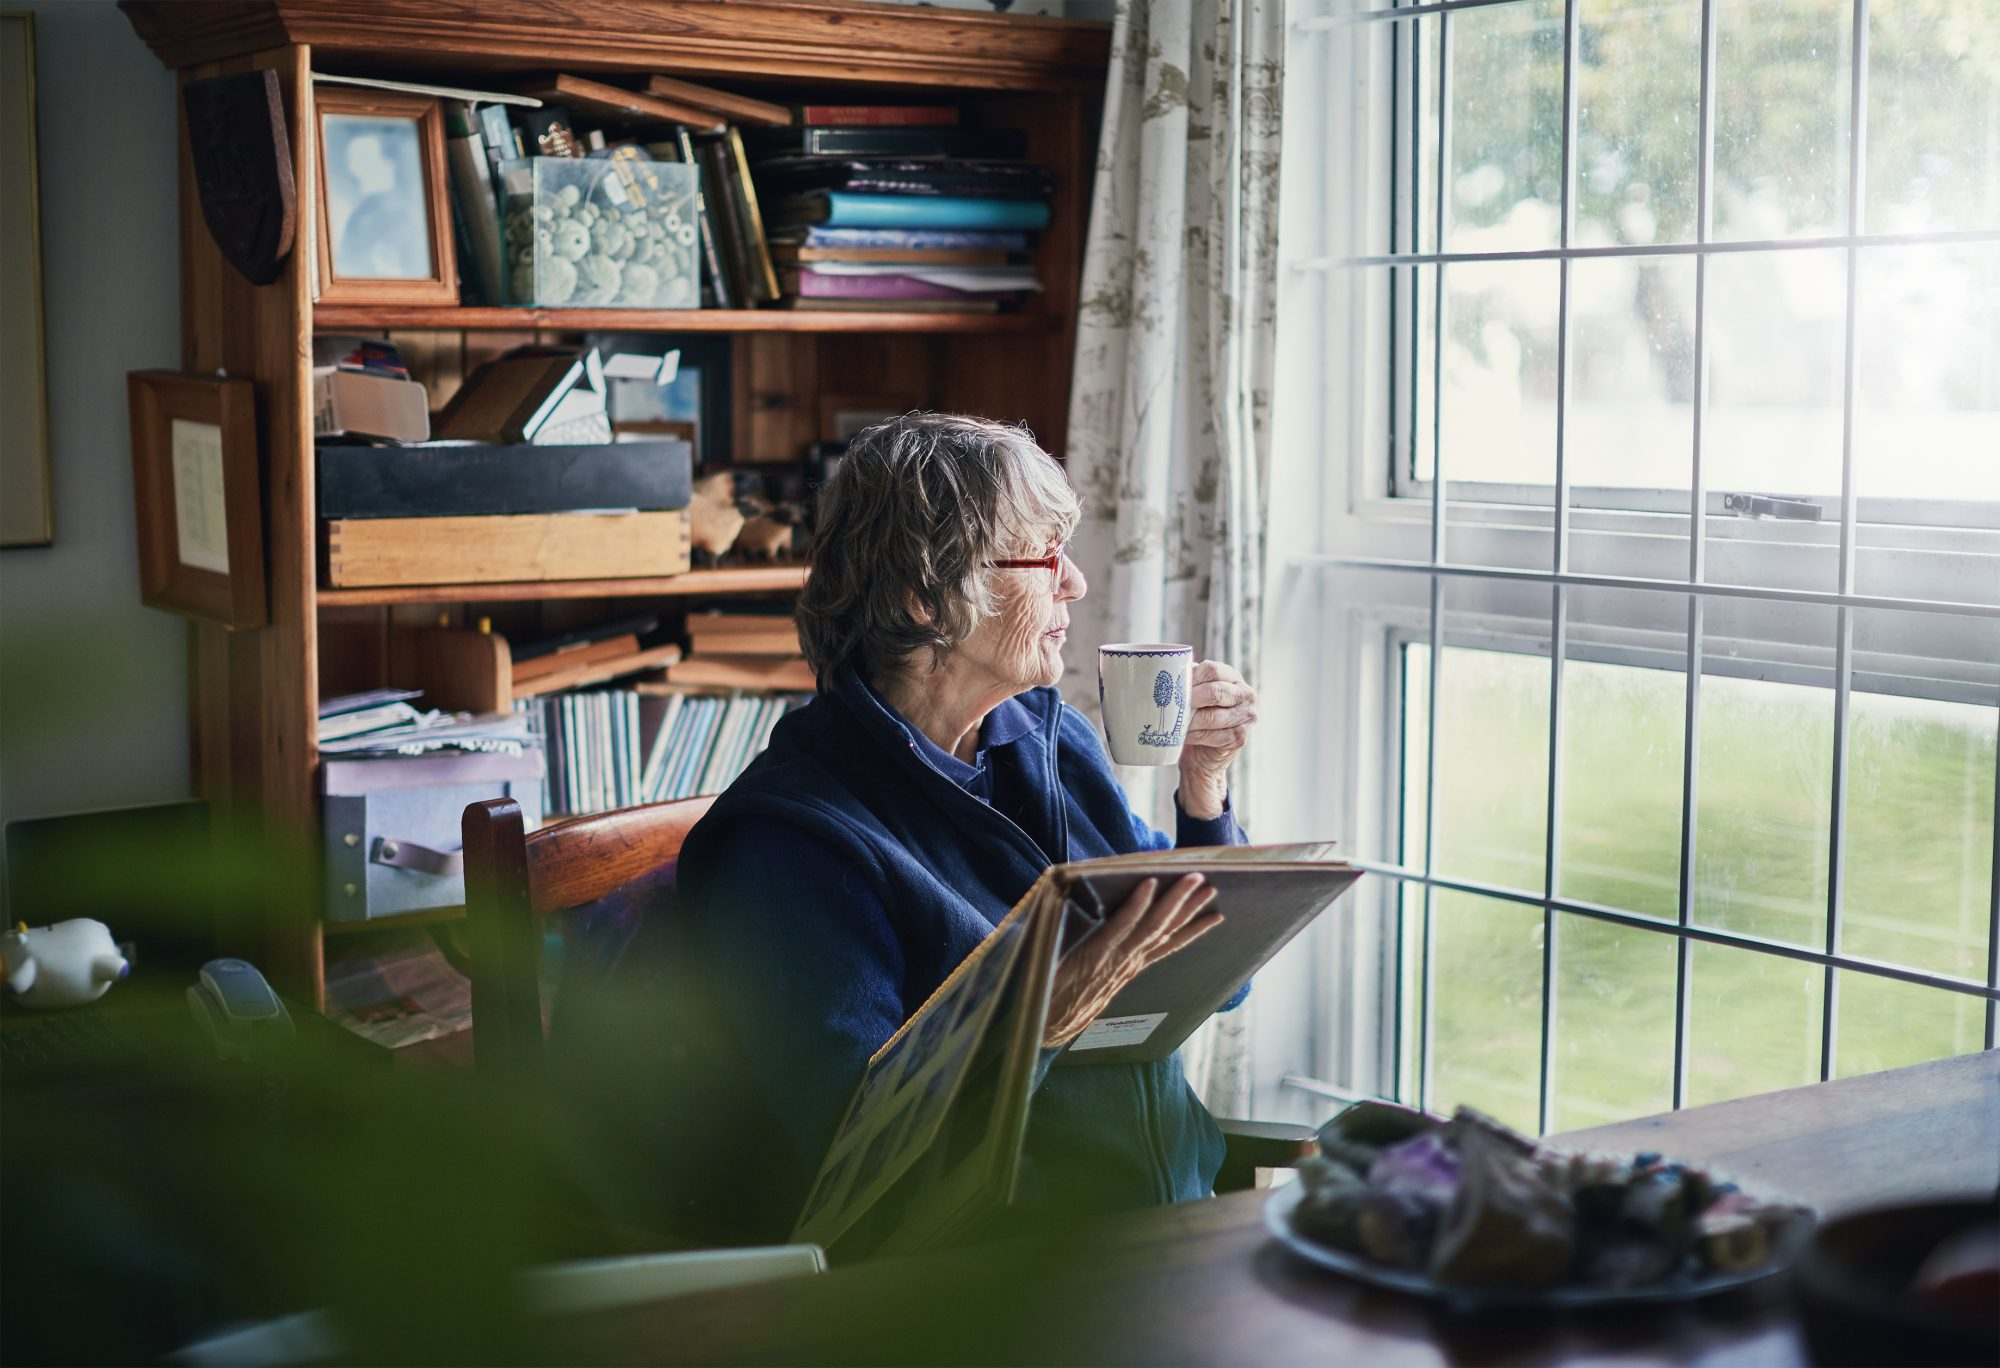 senior woman alone in room looking at photo album